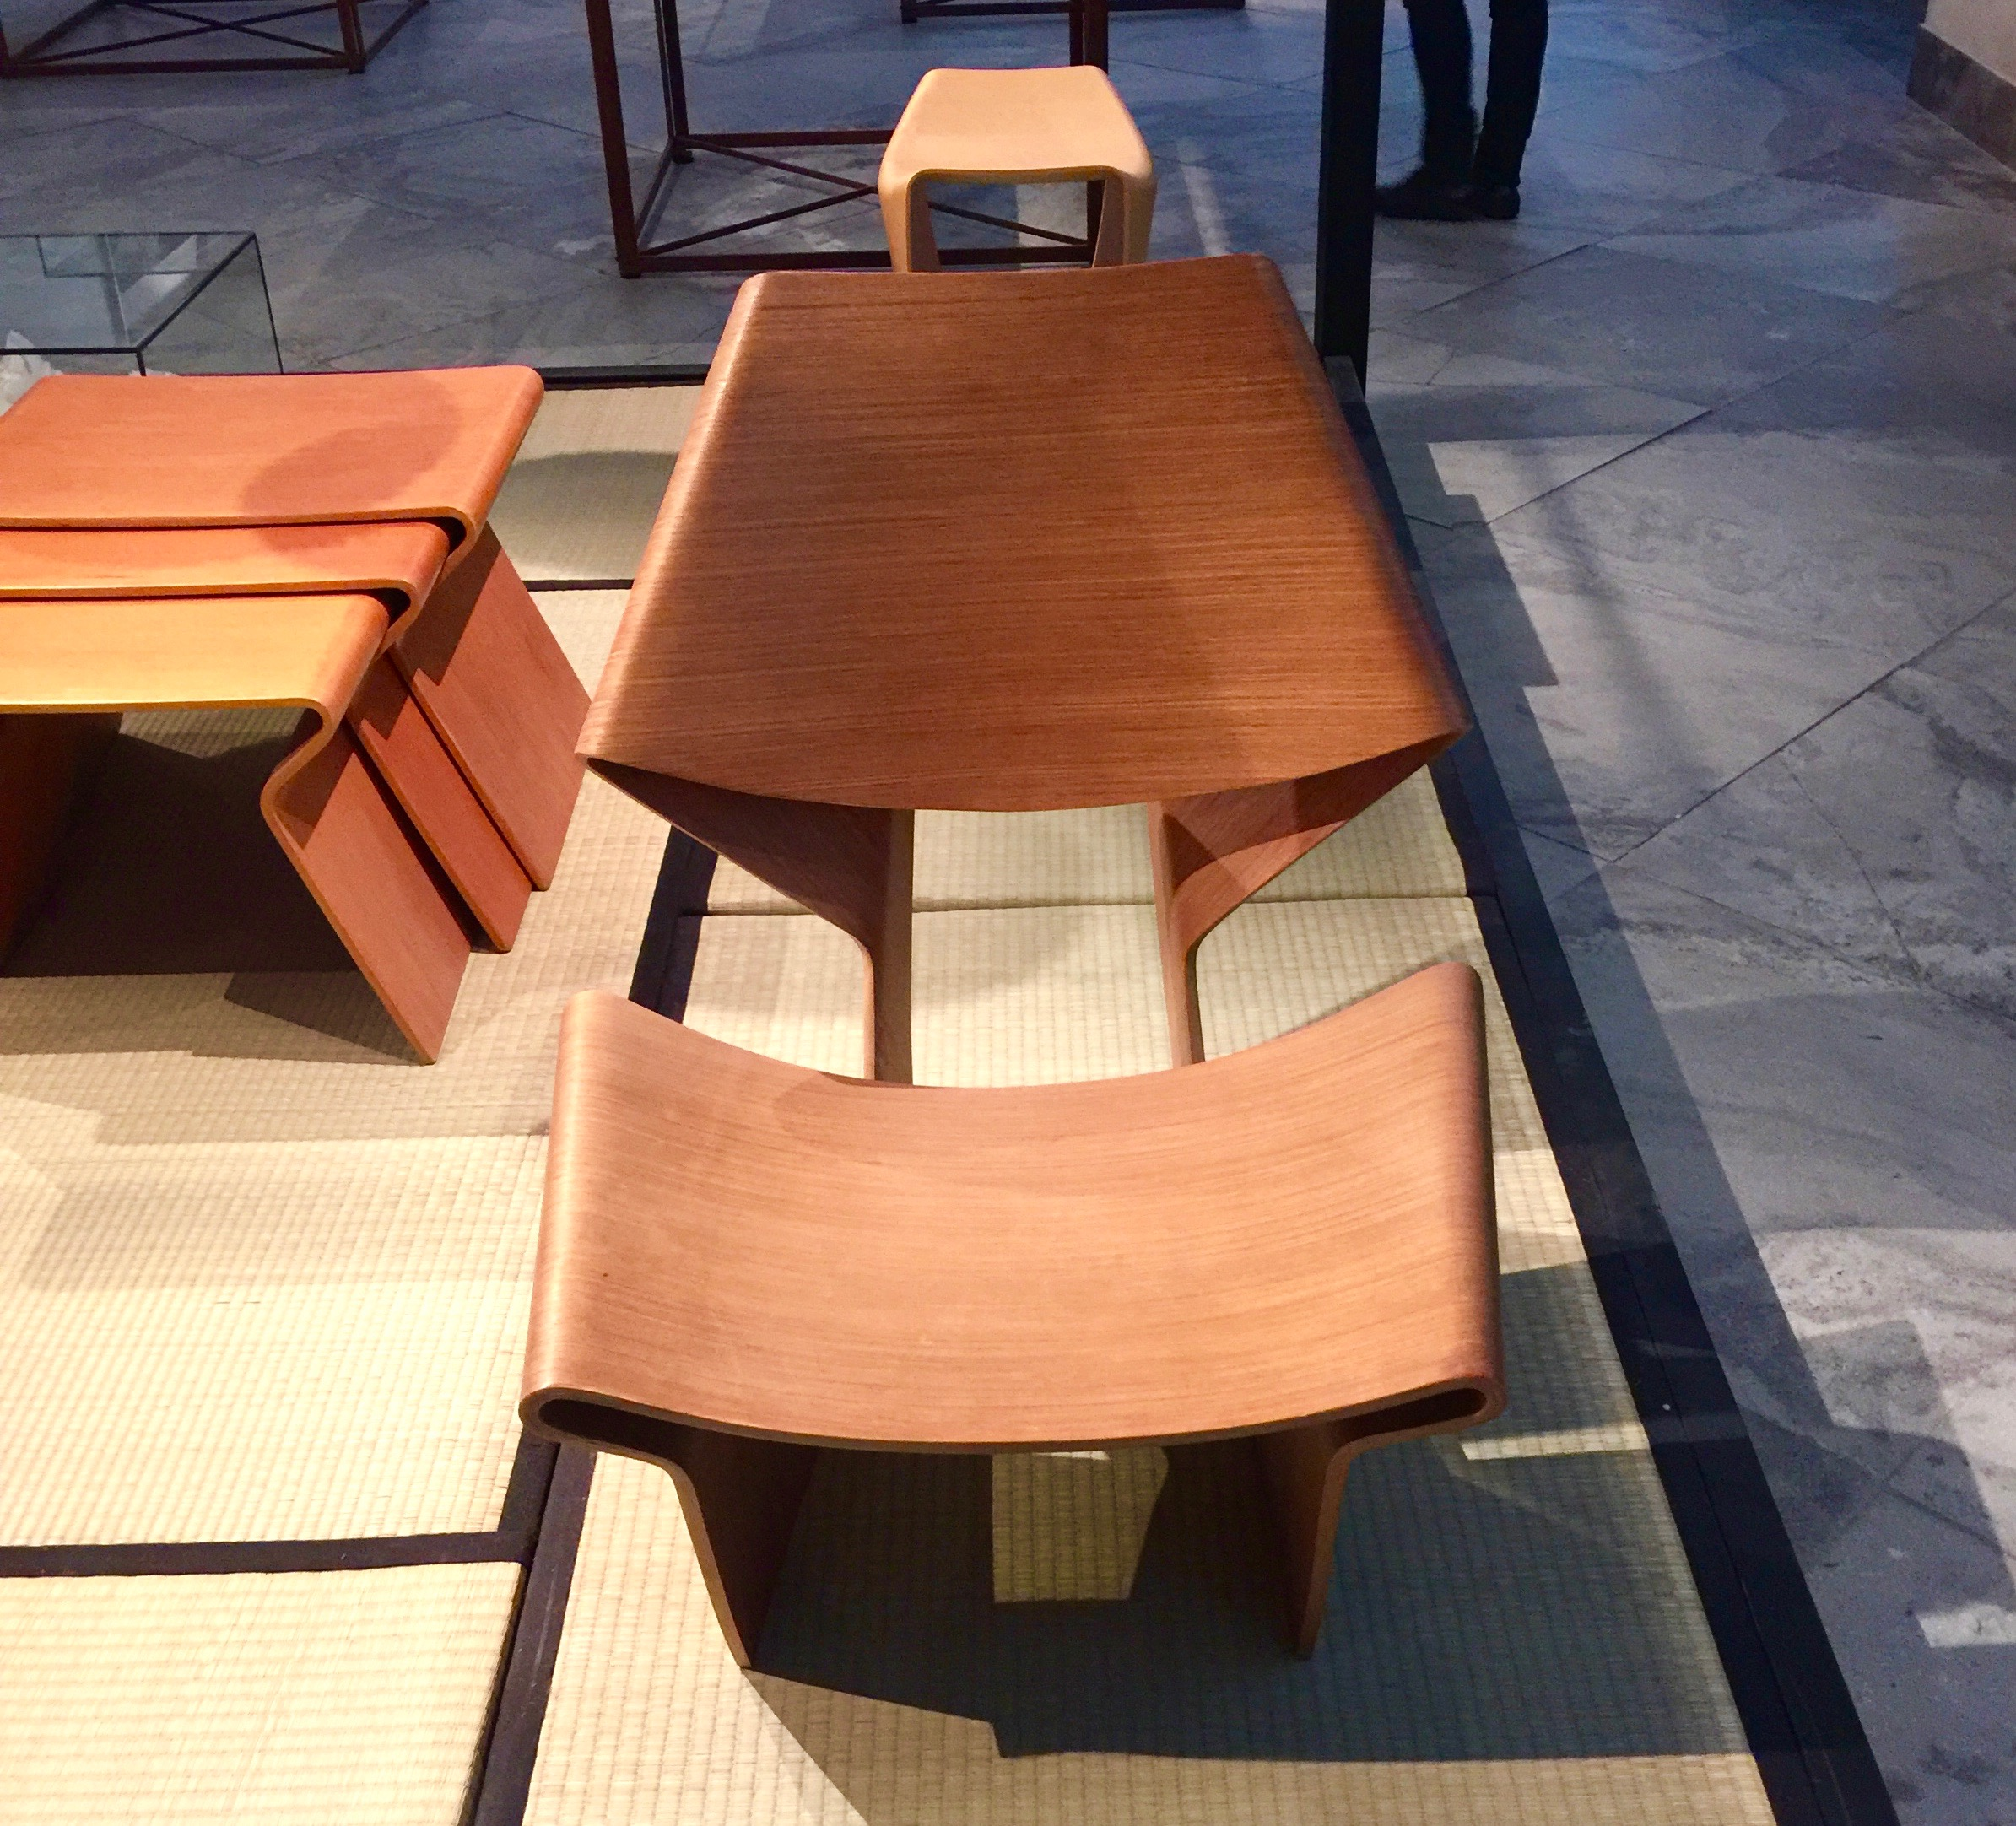 Modern Chairs at Scandinavian Design Museum, Copenhagen Denmark - 3 Days*